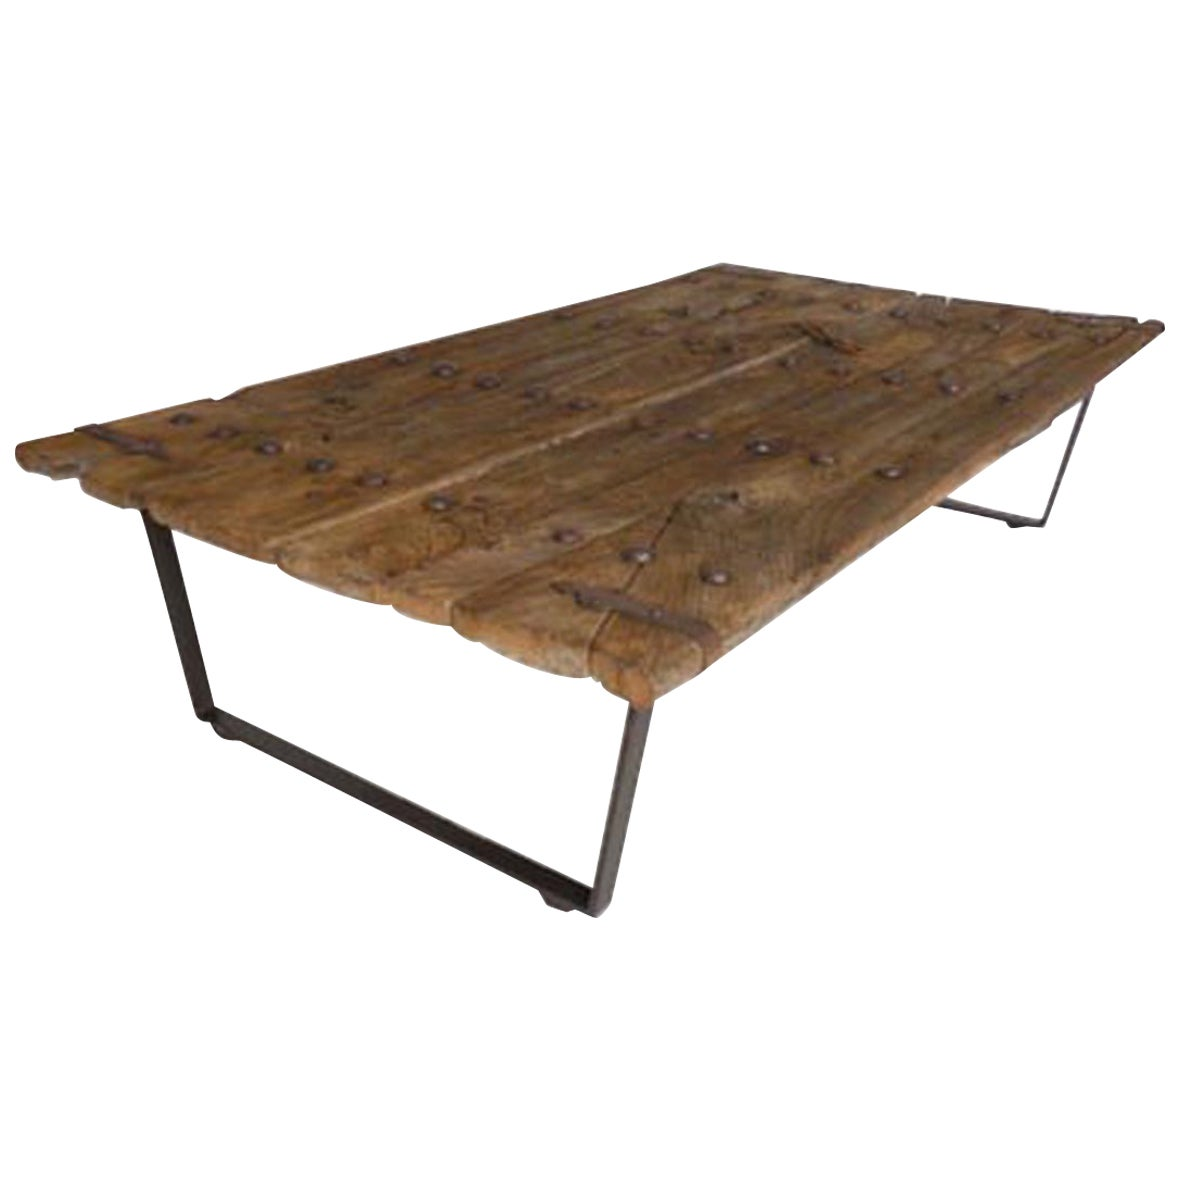 Japanese Coffee Table.Early Japanese Elm Door Coffee Table With Iron Nails On Custom Base